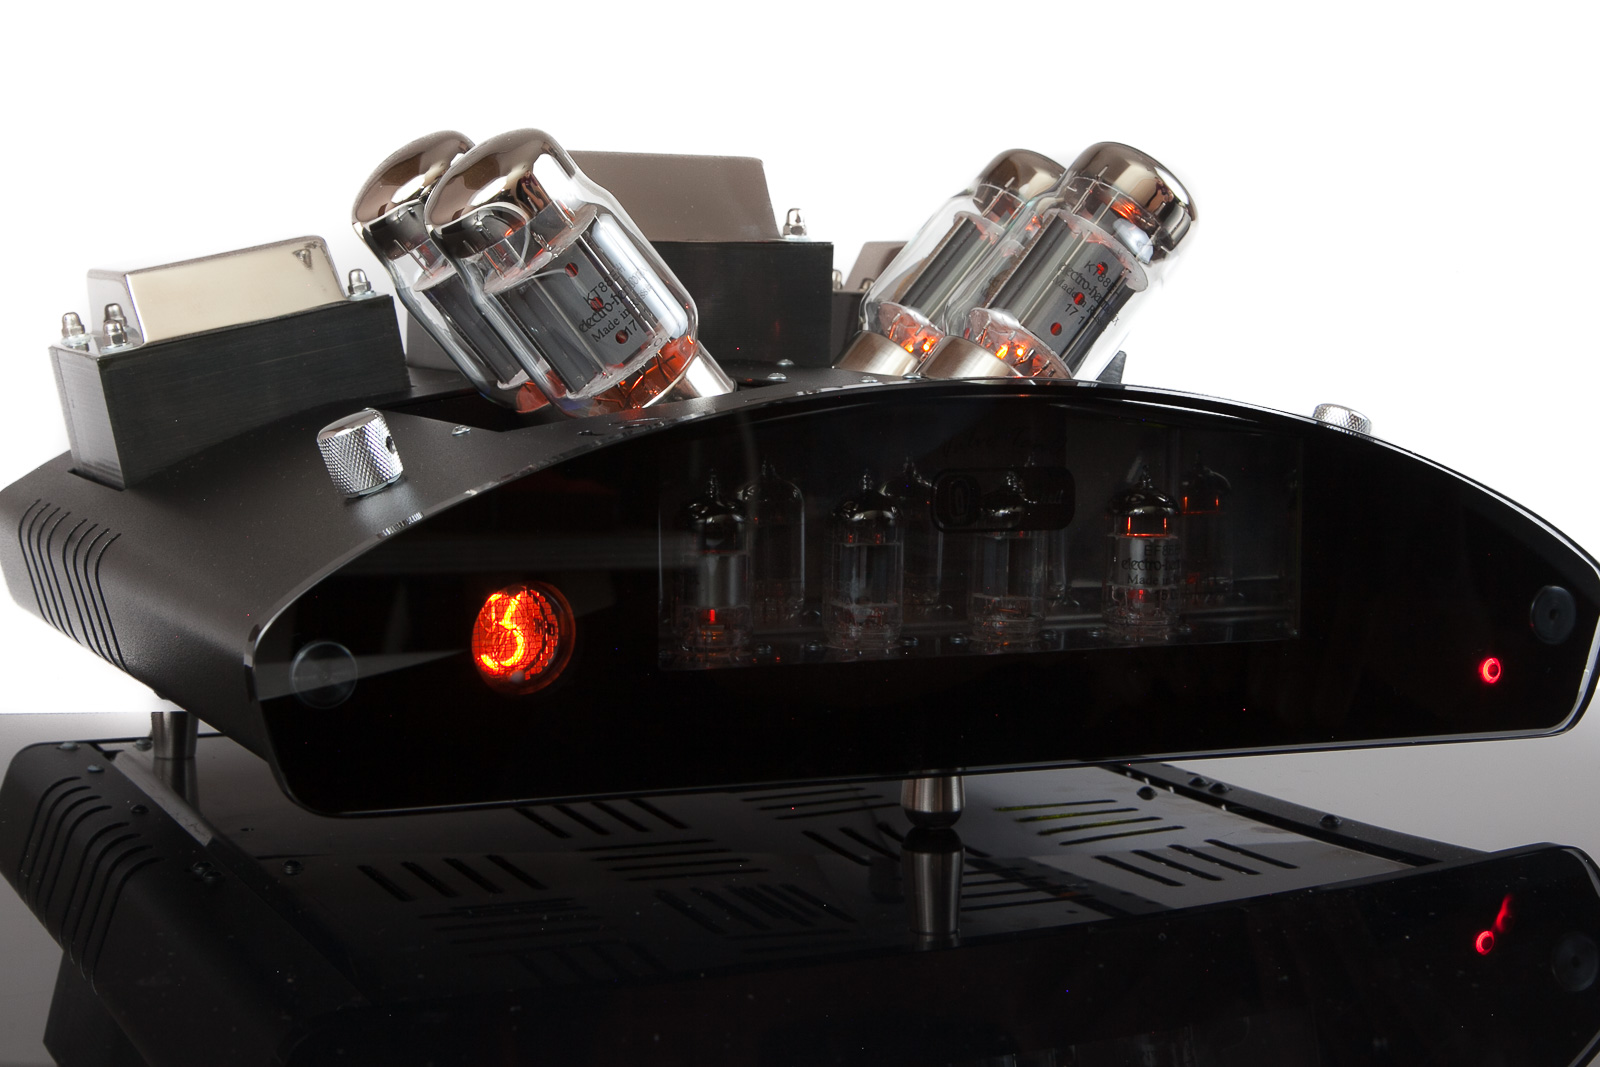 EGG-SHELL TANQ integrated vacuum tube stereo amplifier